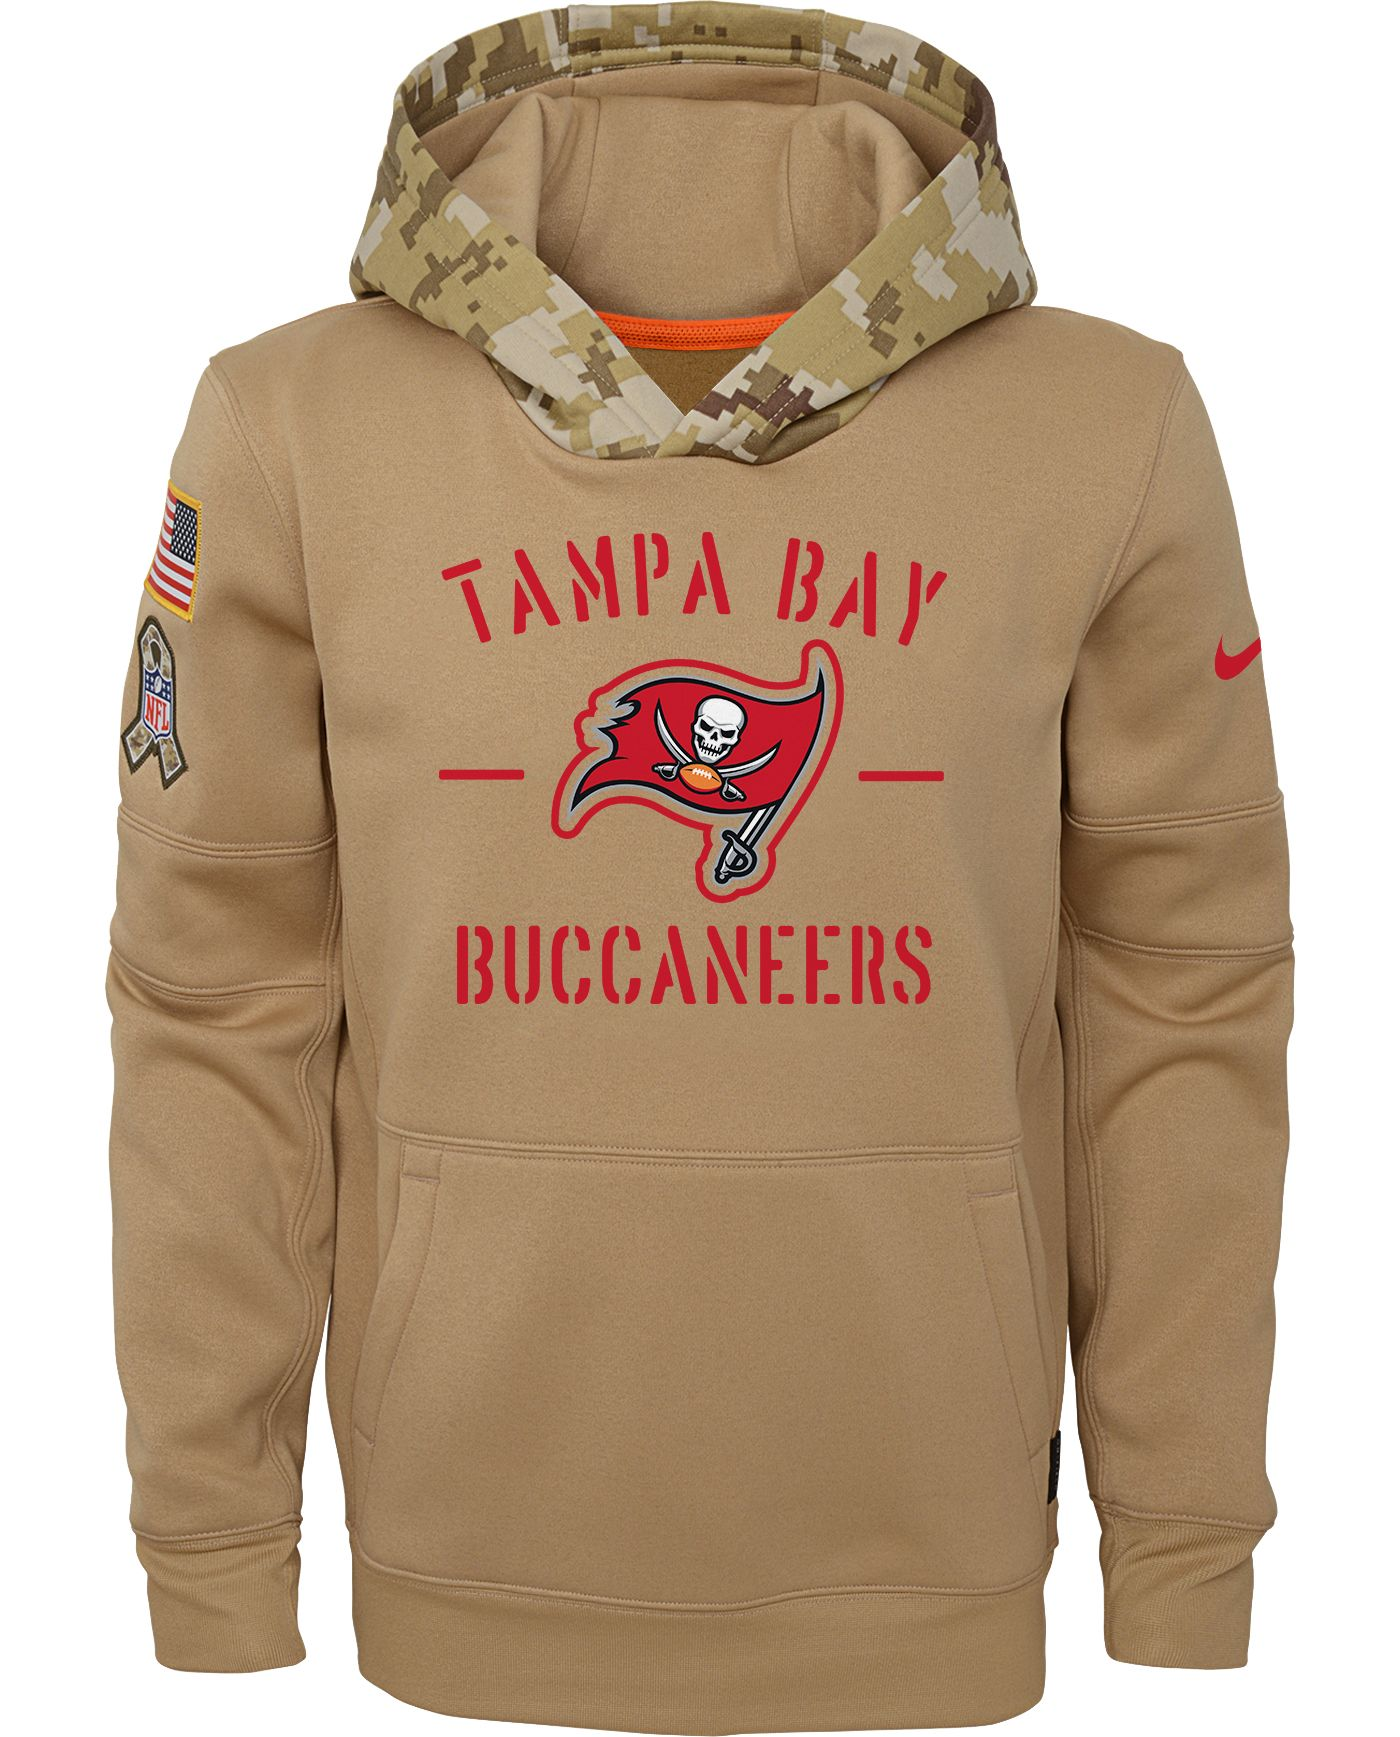 Nike Youth Salute to Service Tampa Bay Buccaneers Therma-FIT Beige Camo Hoodie